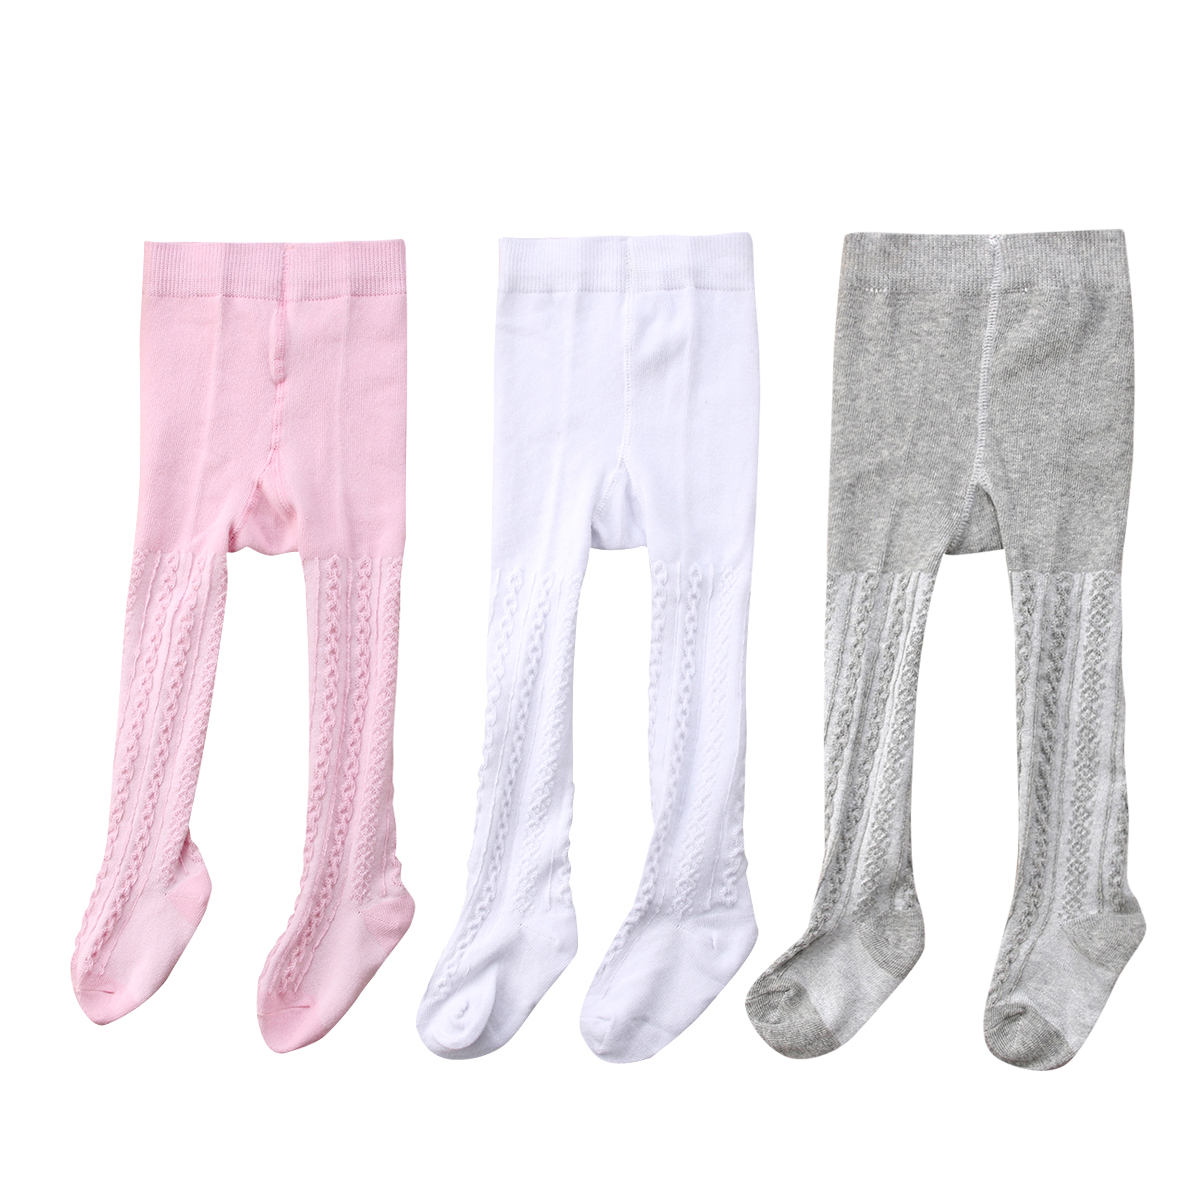 Country Kids Girls Everyday Basic Sheer Footed Pantyhose Tights Pack of 3